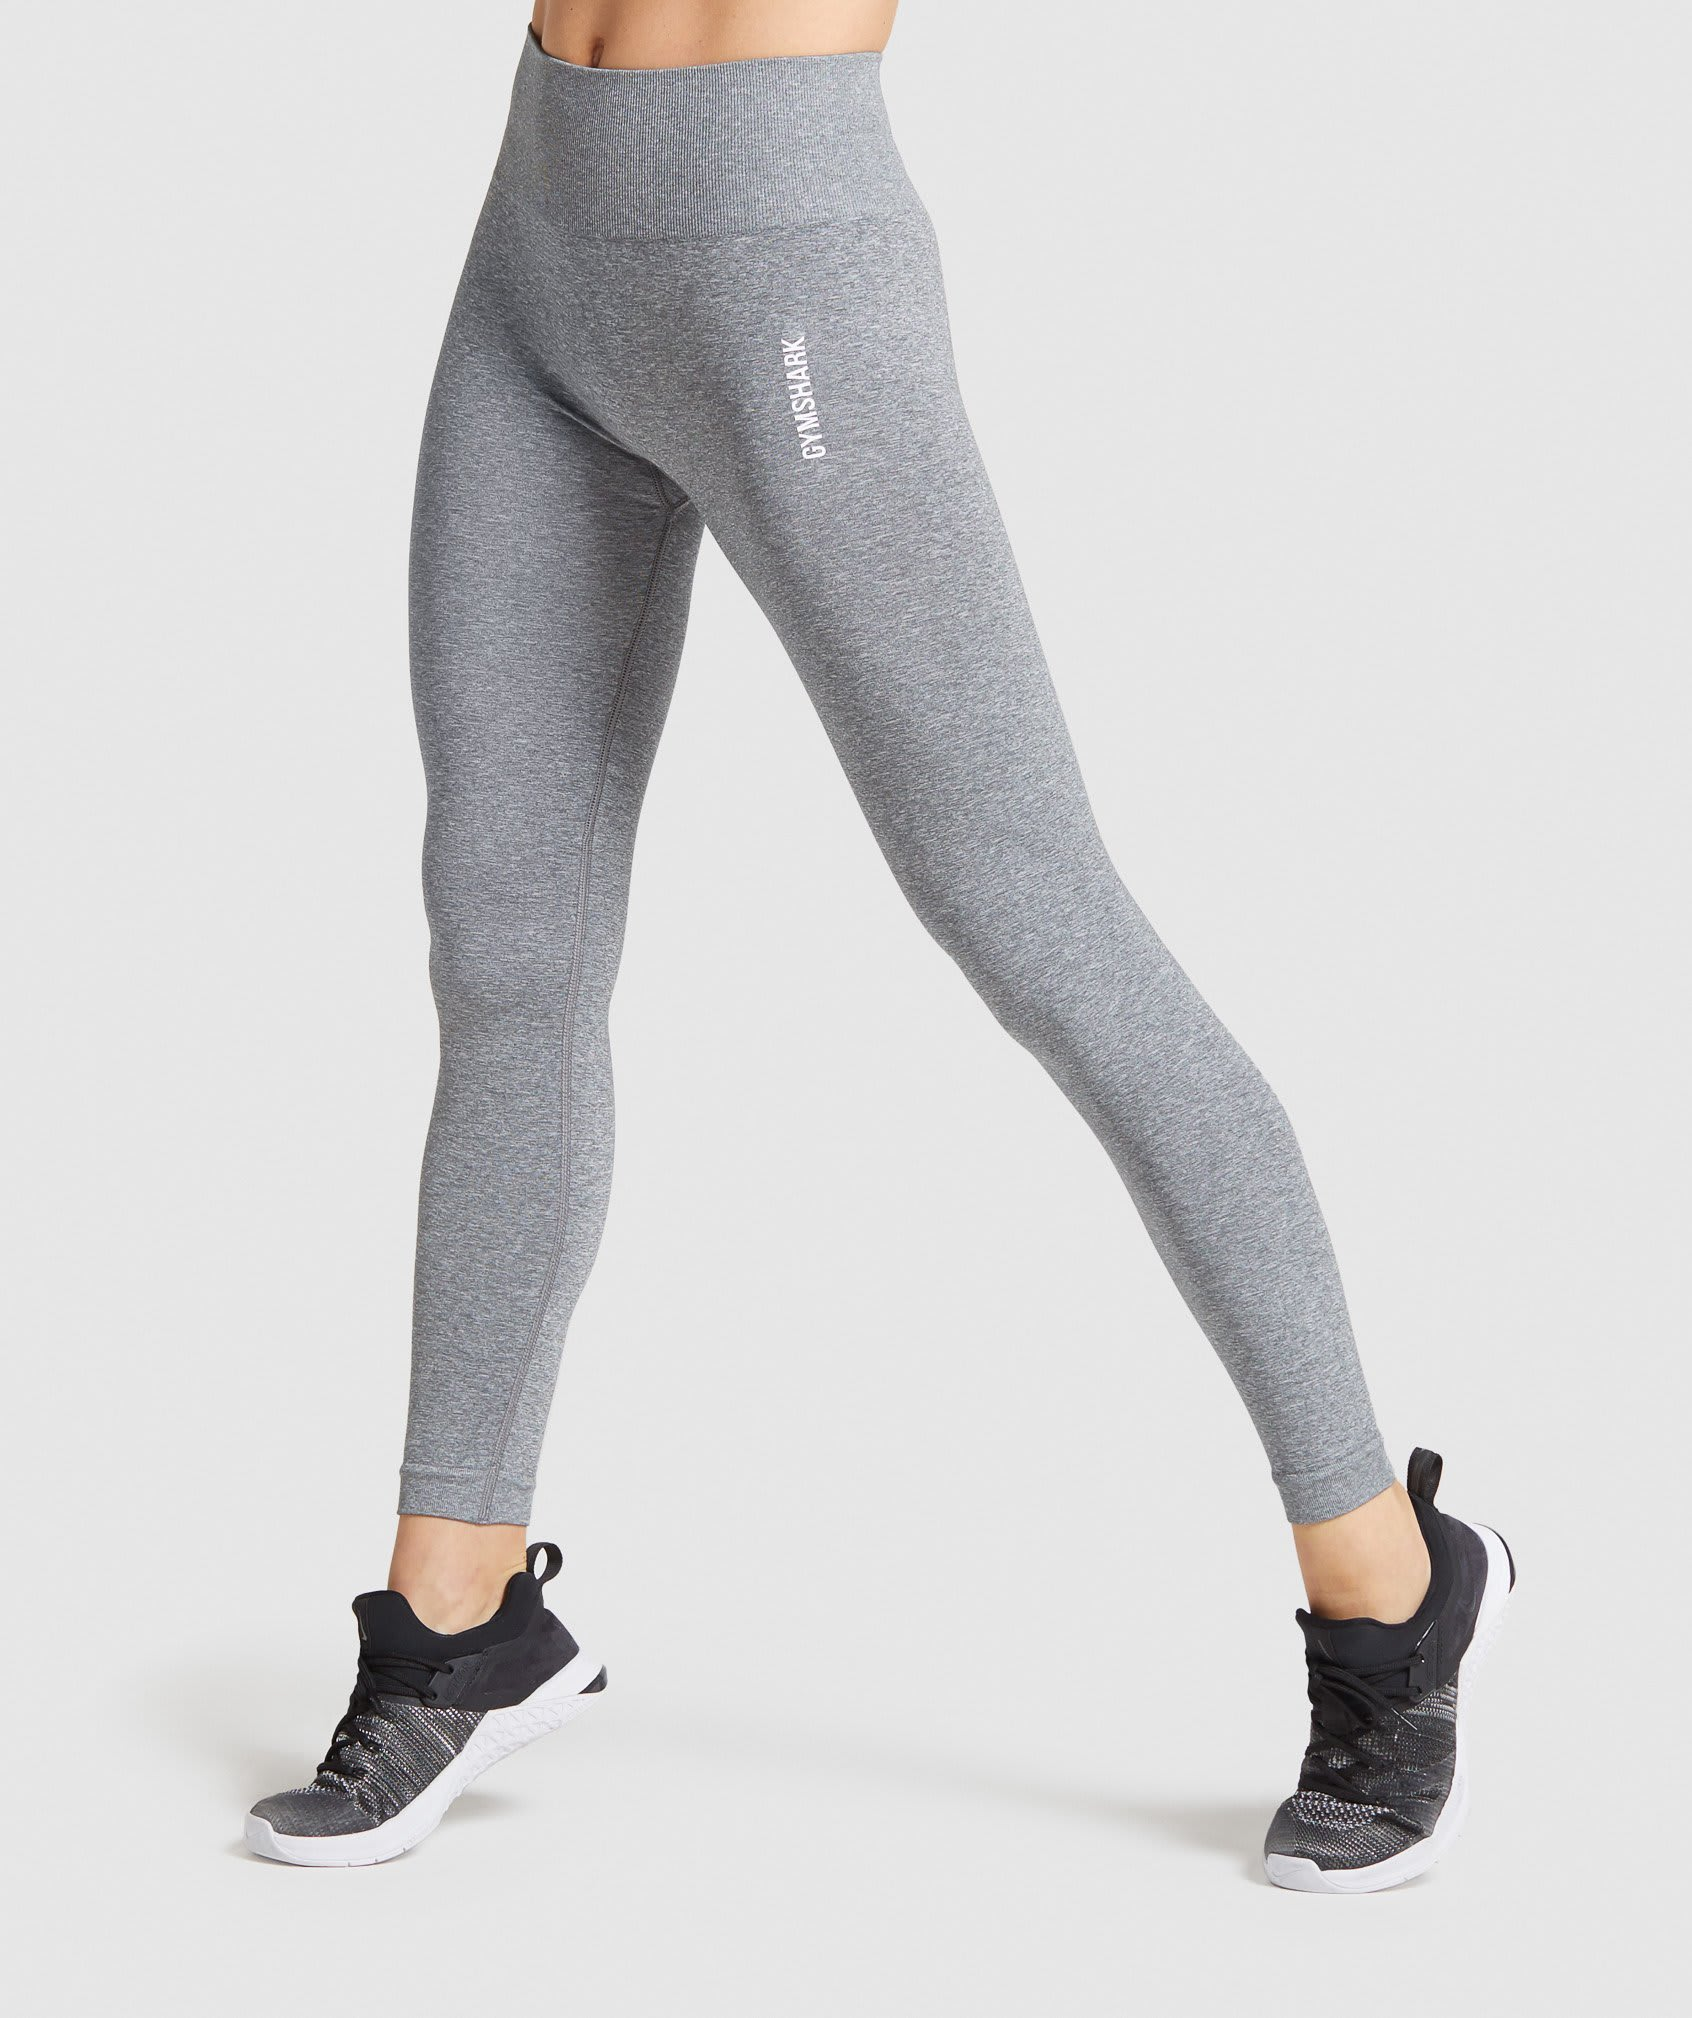 ADAPT MARL SEAMLESS LEGGINGS by Gymshark, available on gymshark.com for $55 Kaia Gerber Pants Exact Product